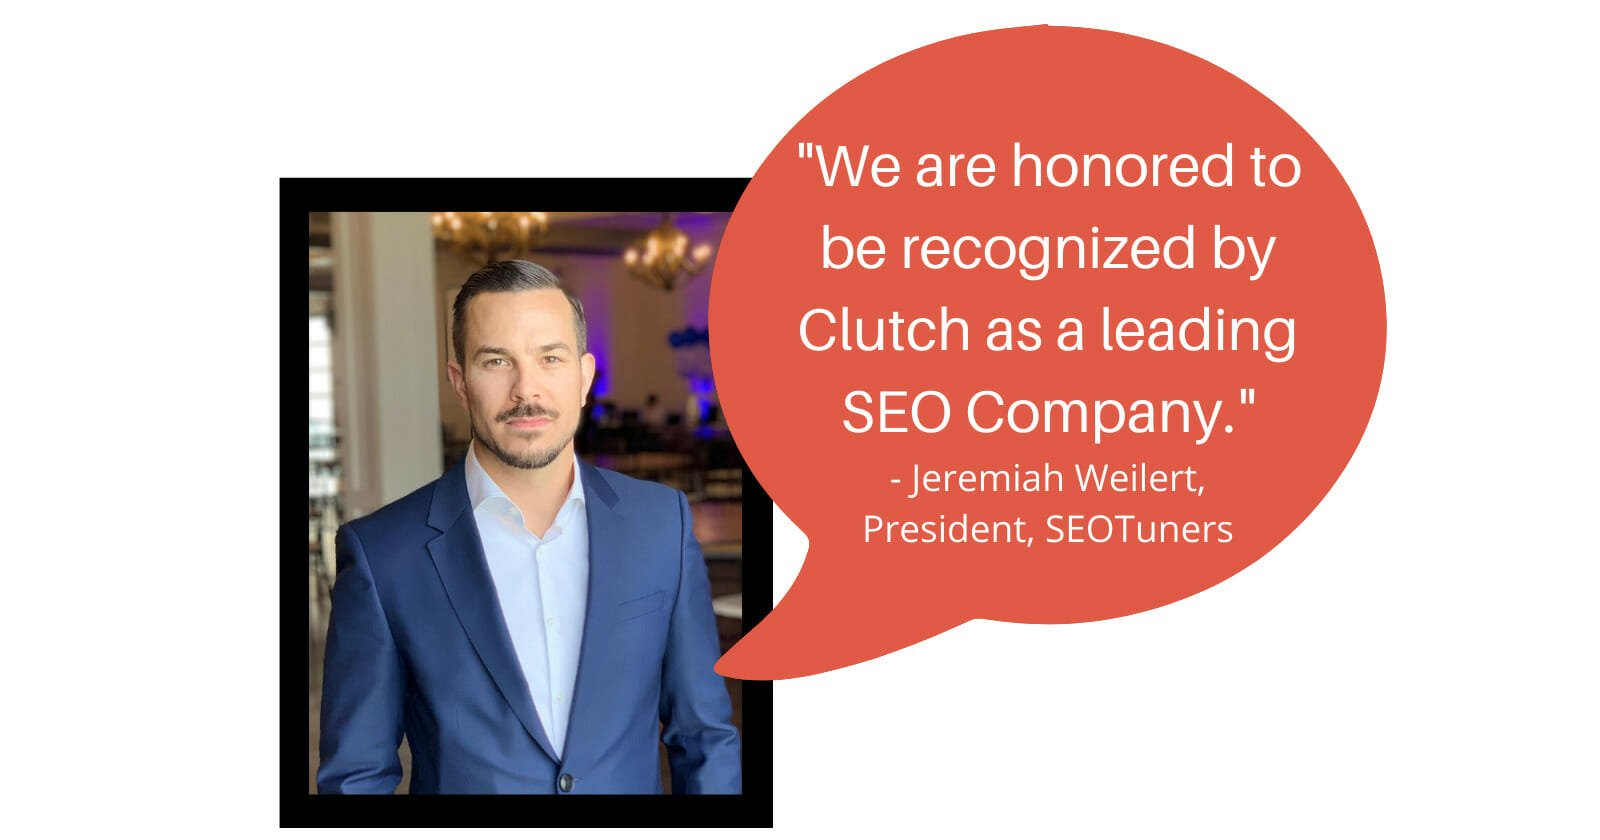 quote from CEO